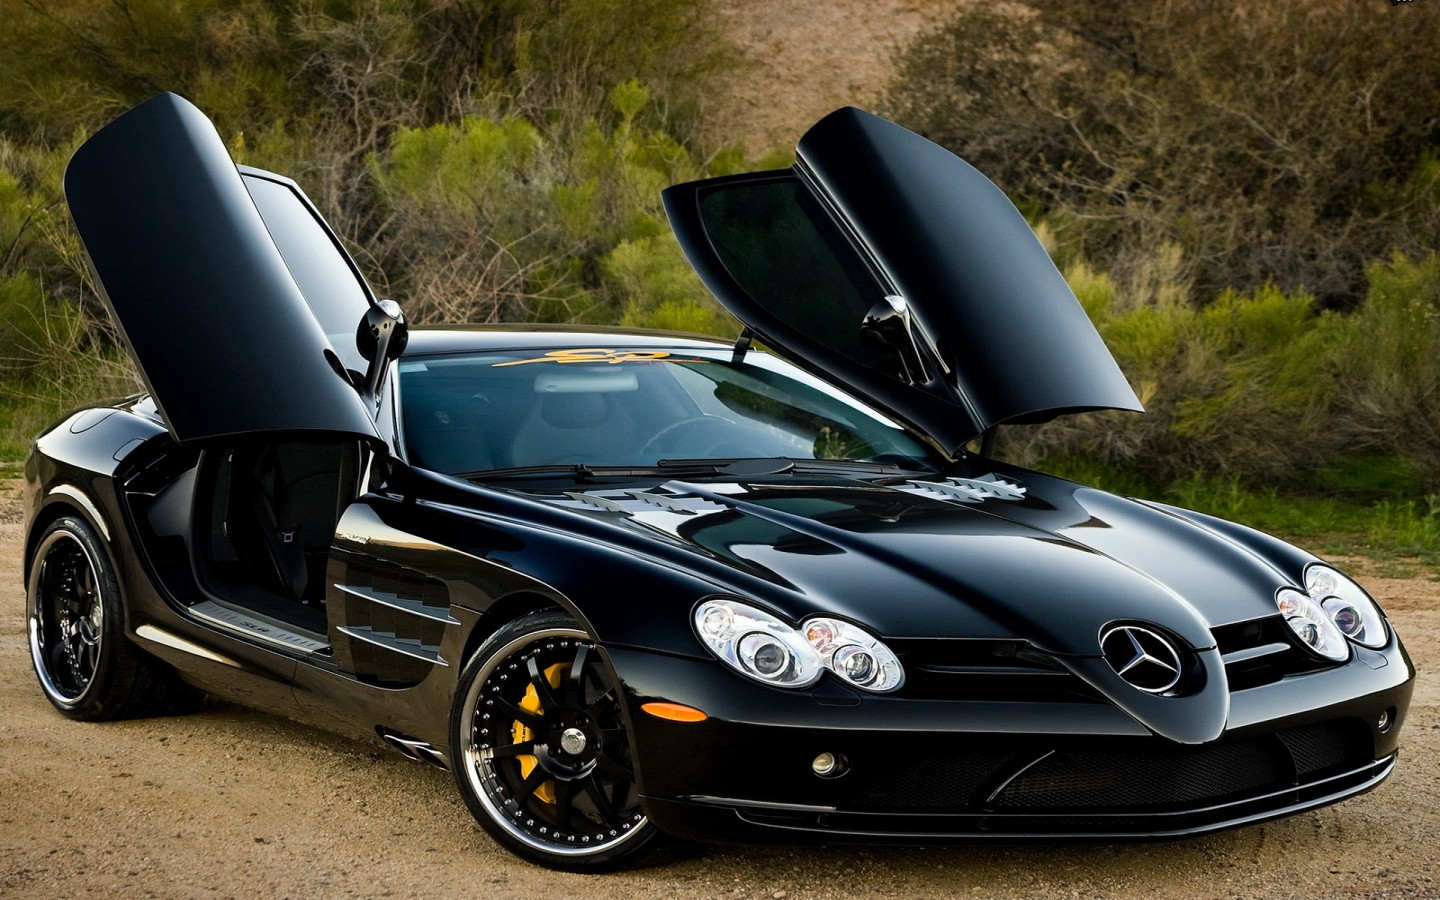 Mercedes Benz Usa Hd Wallpaper Cars Wallpapers Hd